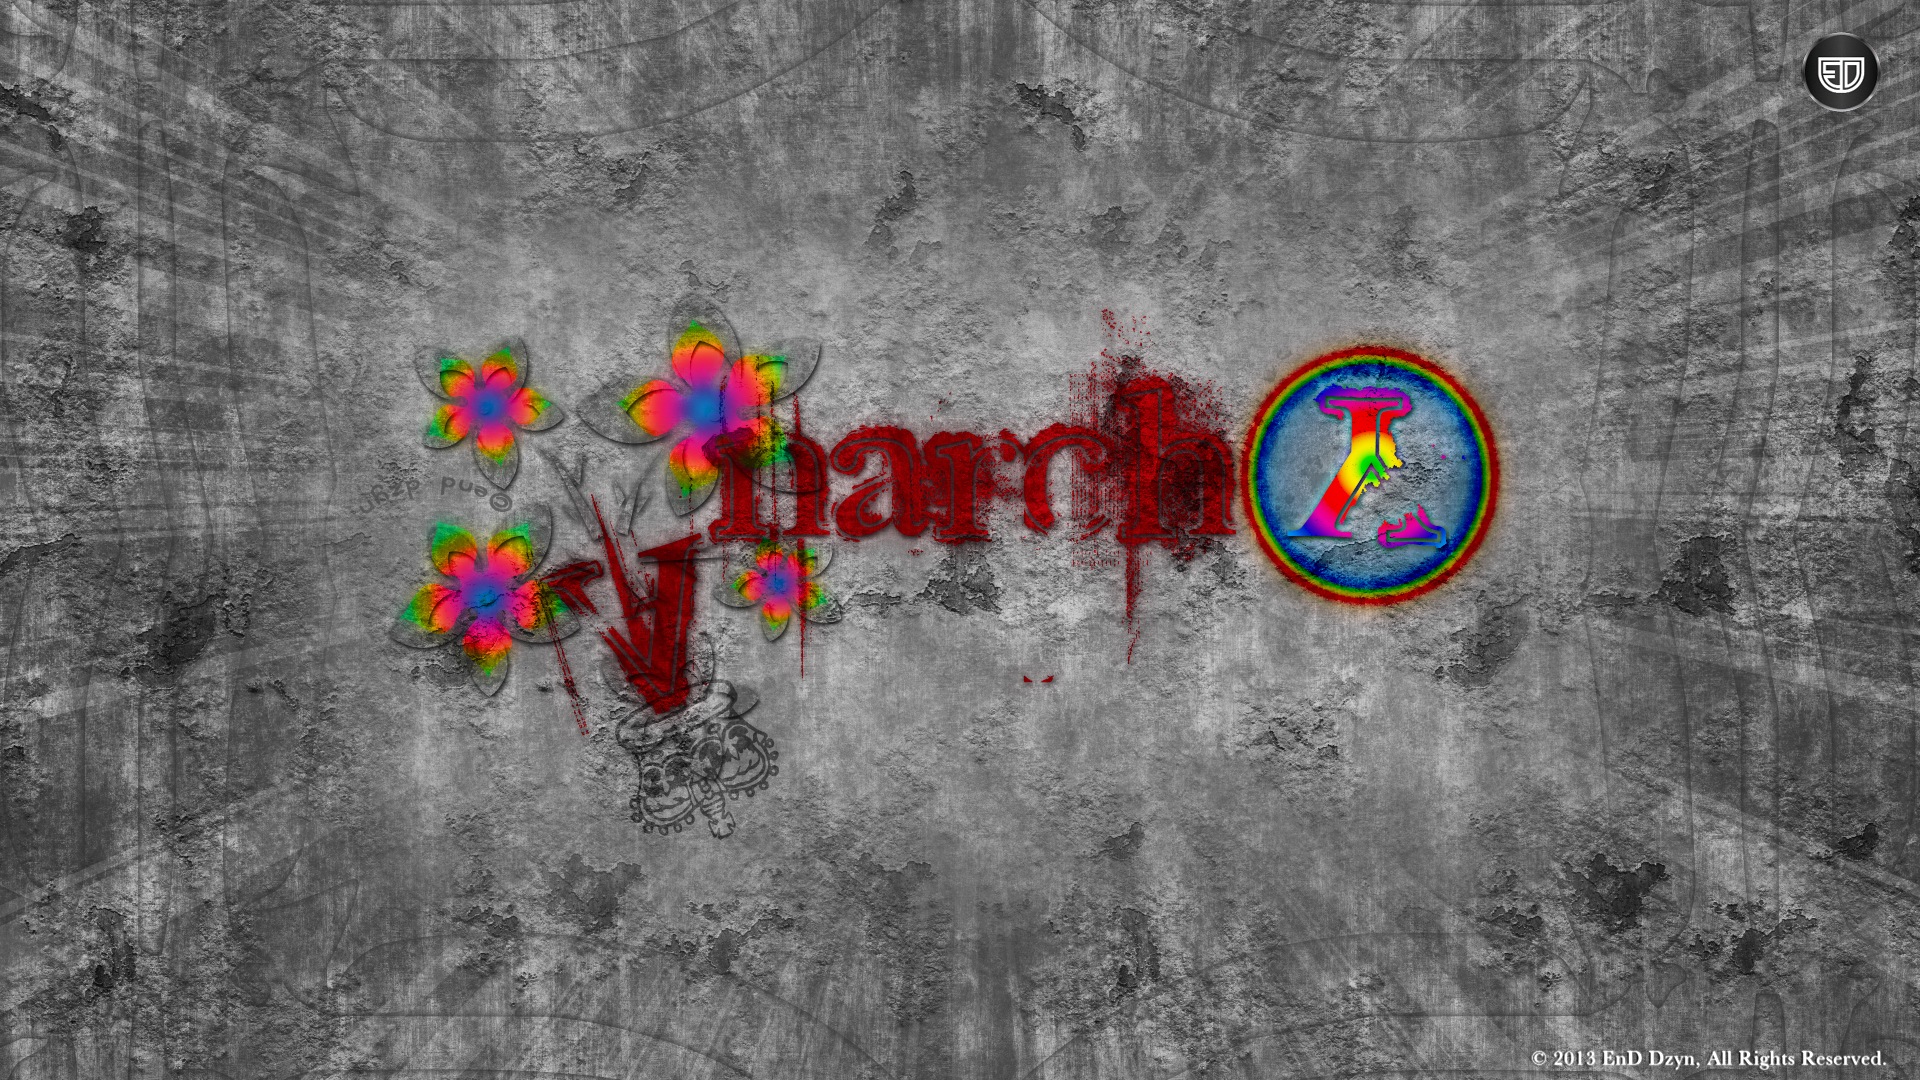 Anarchy Graffiti Abstract HD Wallpaper Backgrounds   EnD Dzyn 1920x1080